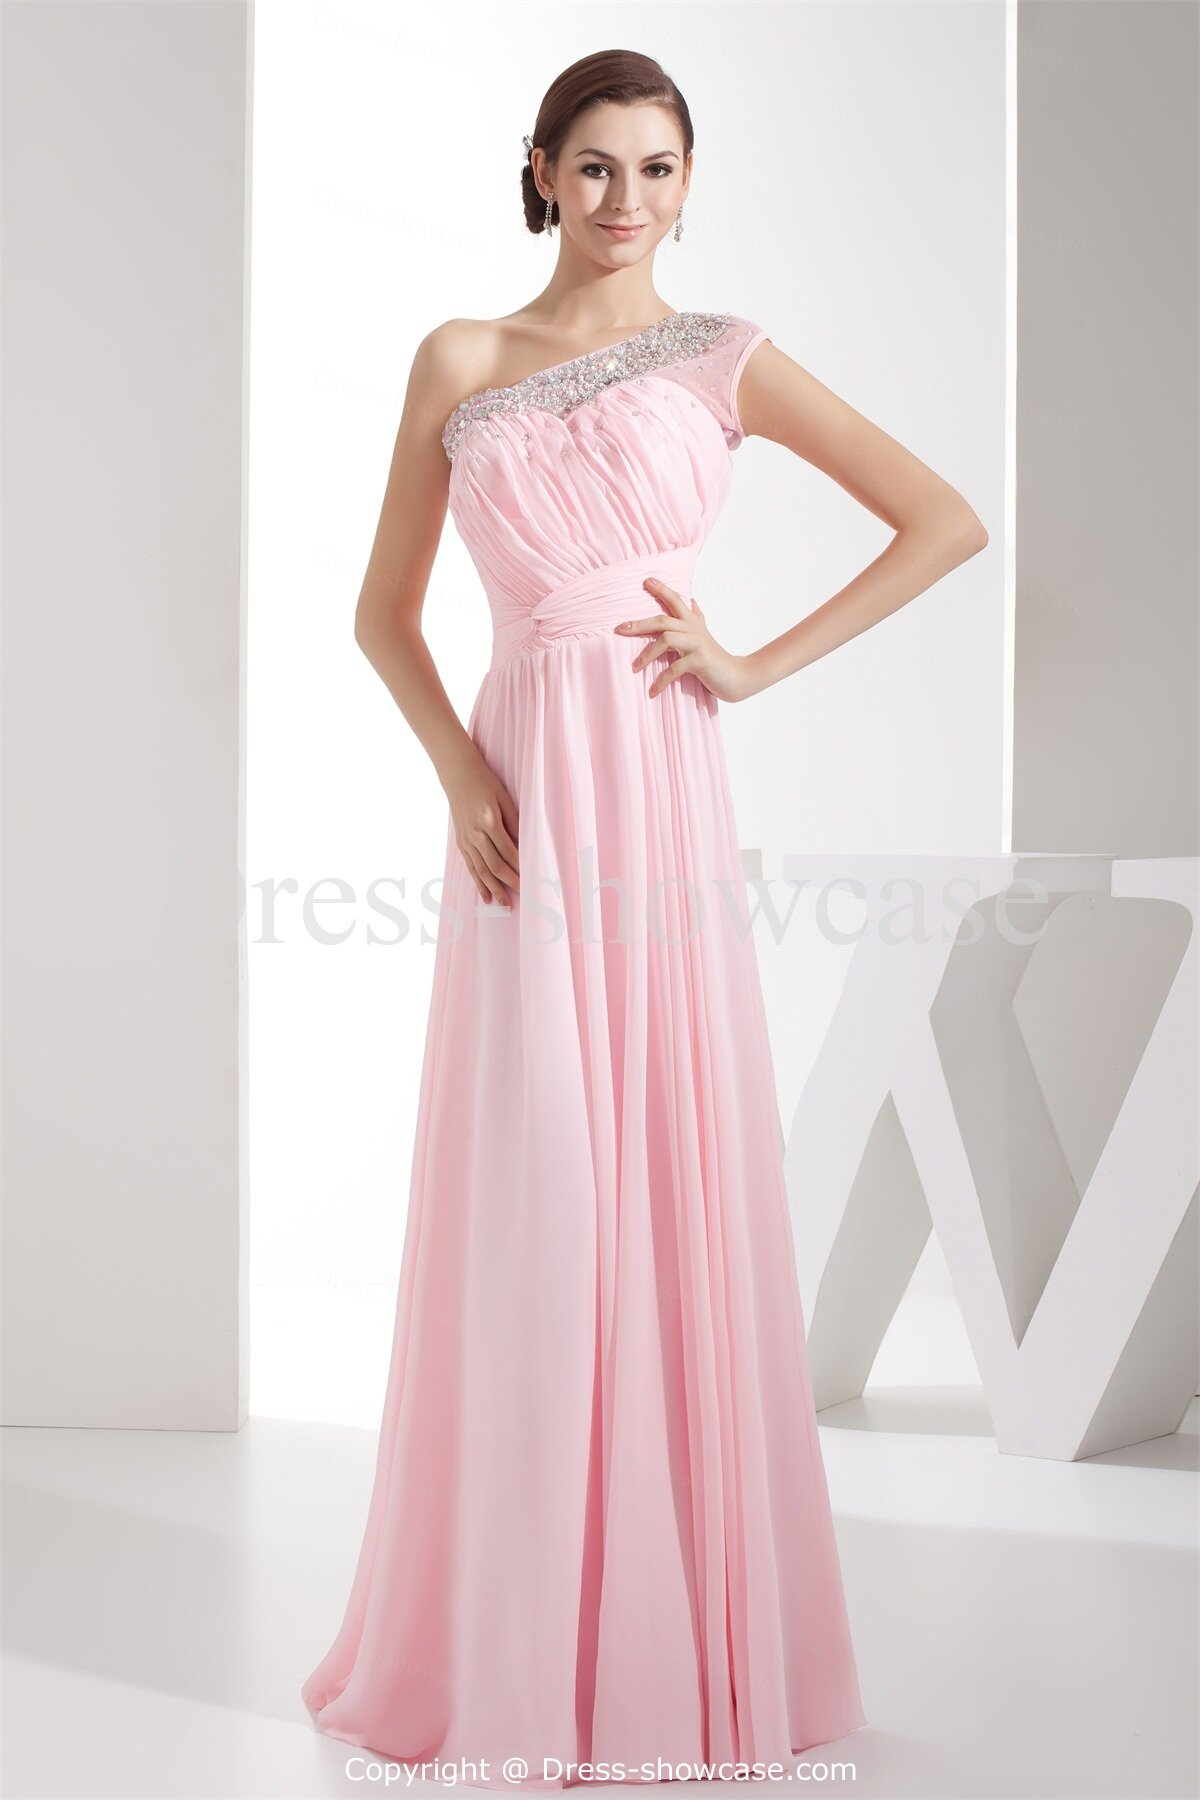 Pink Dresses For Wedding Guests Pictures Ideas Guide To